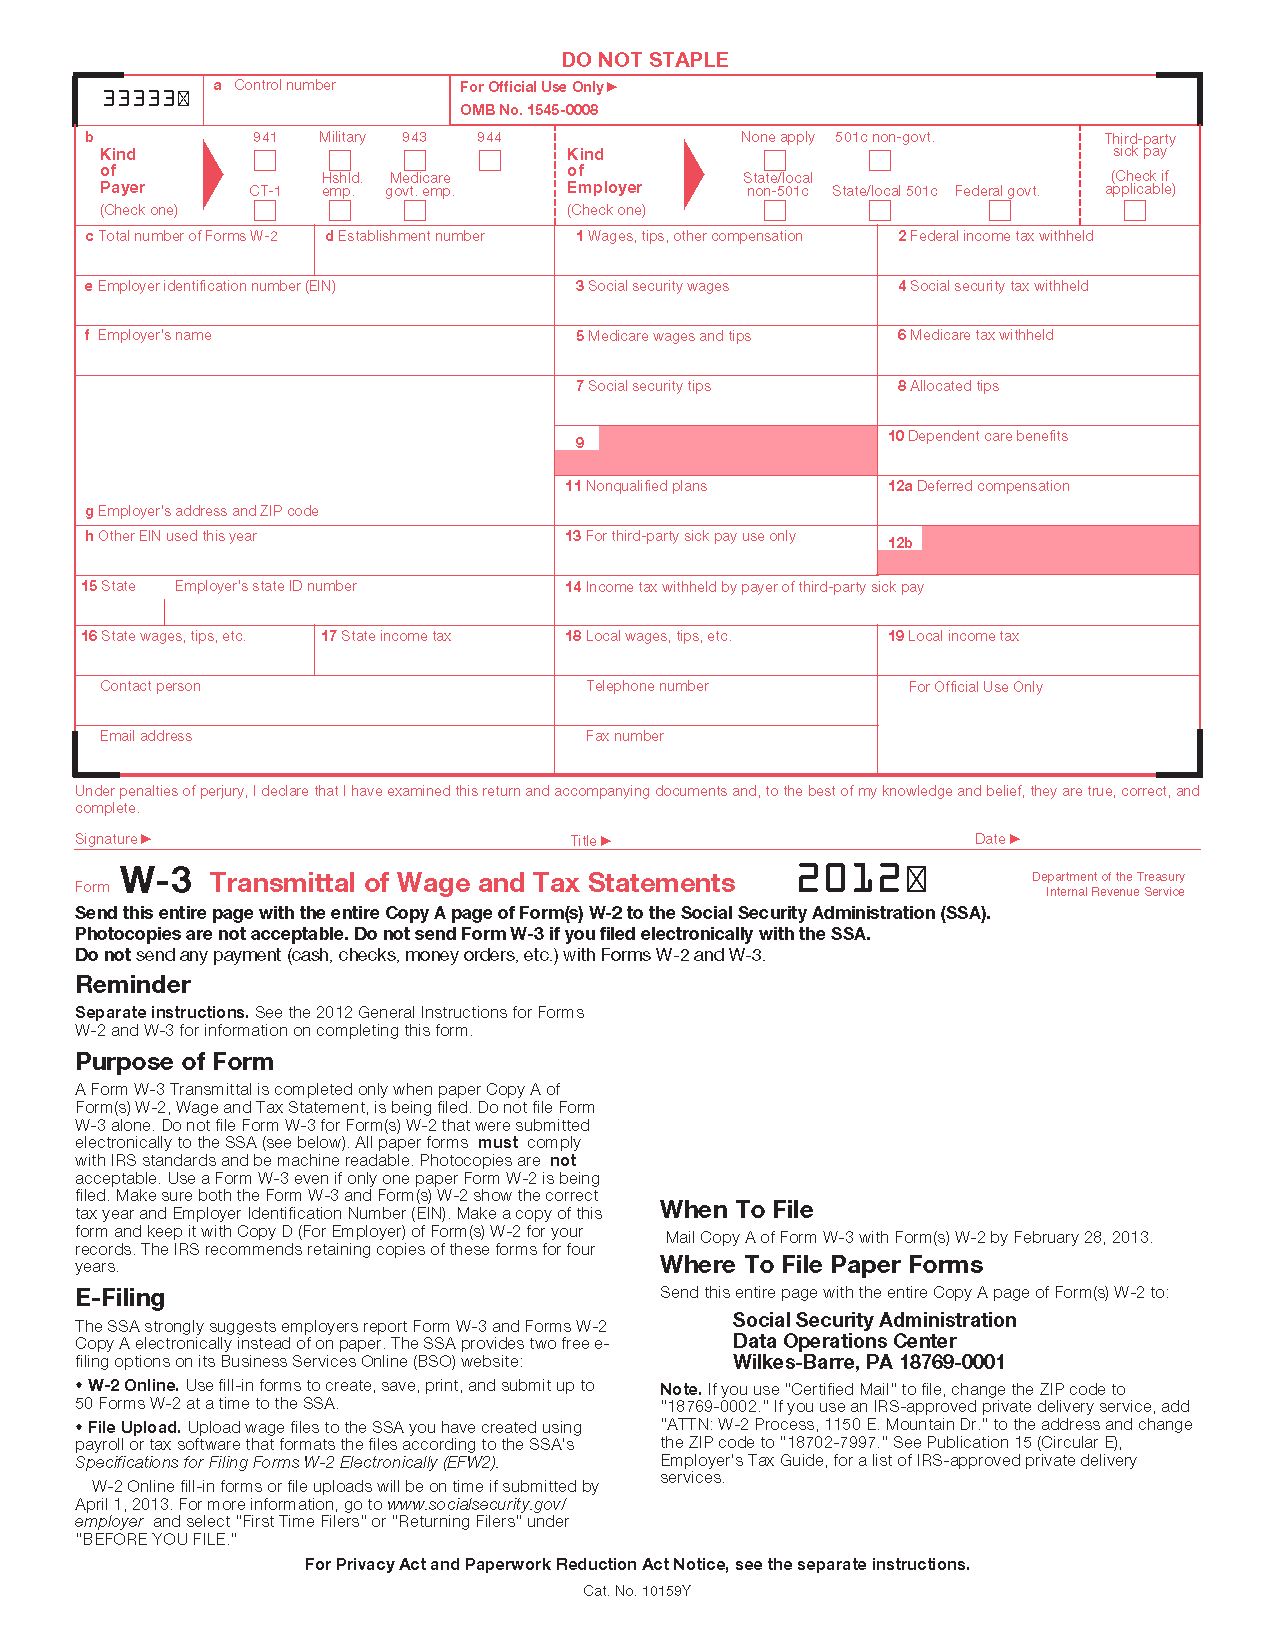 W9 Request for Taxpayer Identification Number and